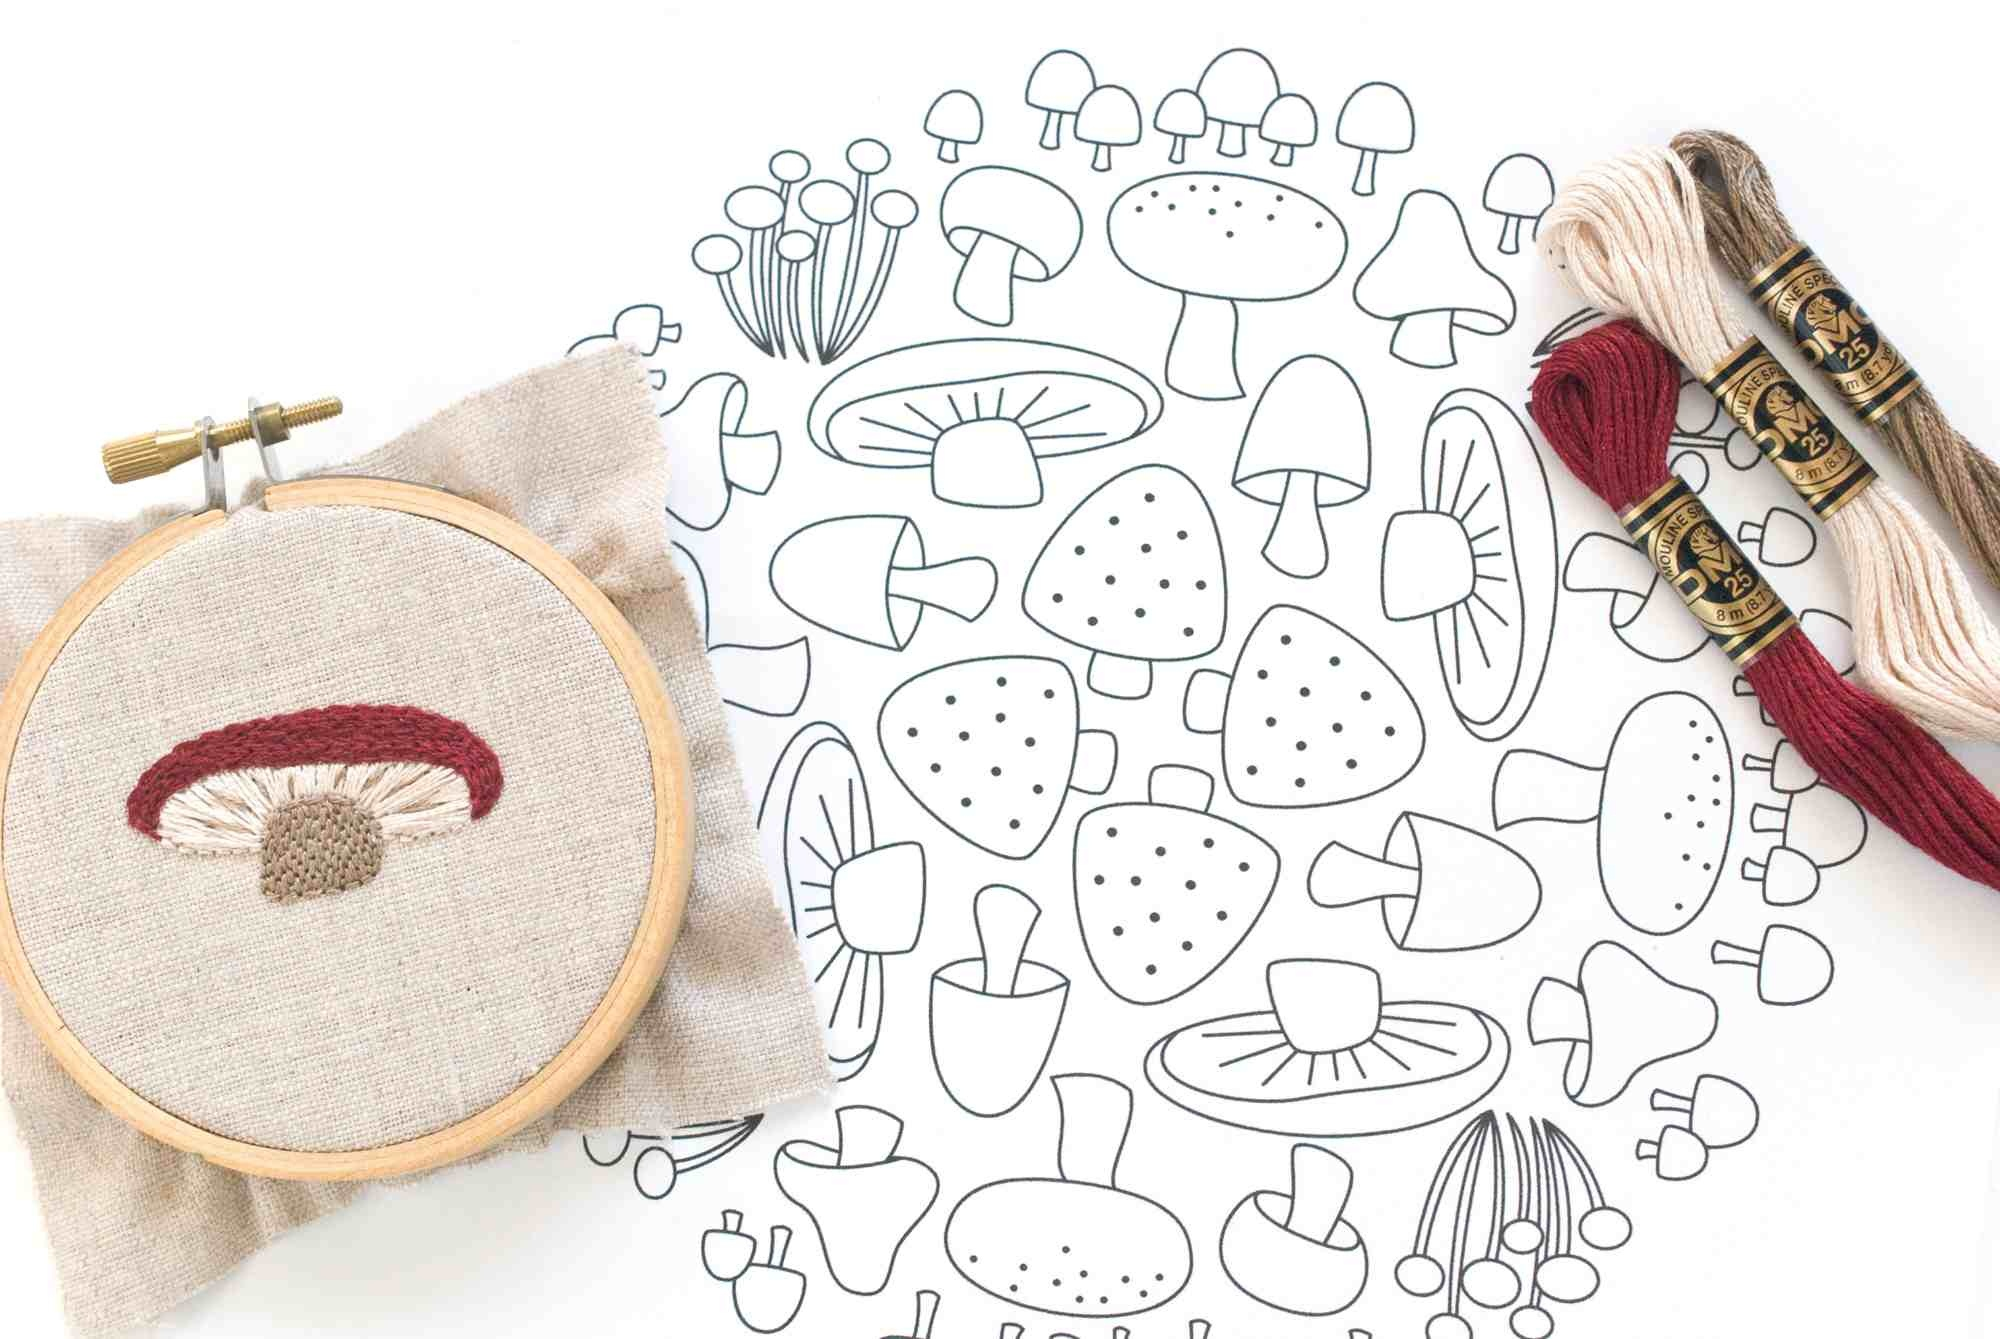 Our Top 25 Free Embroidery Designs - Free Printable Embroidery Patterns